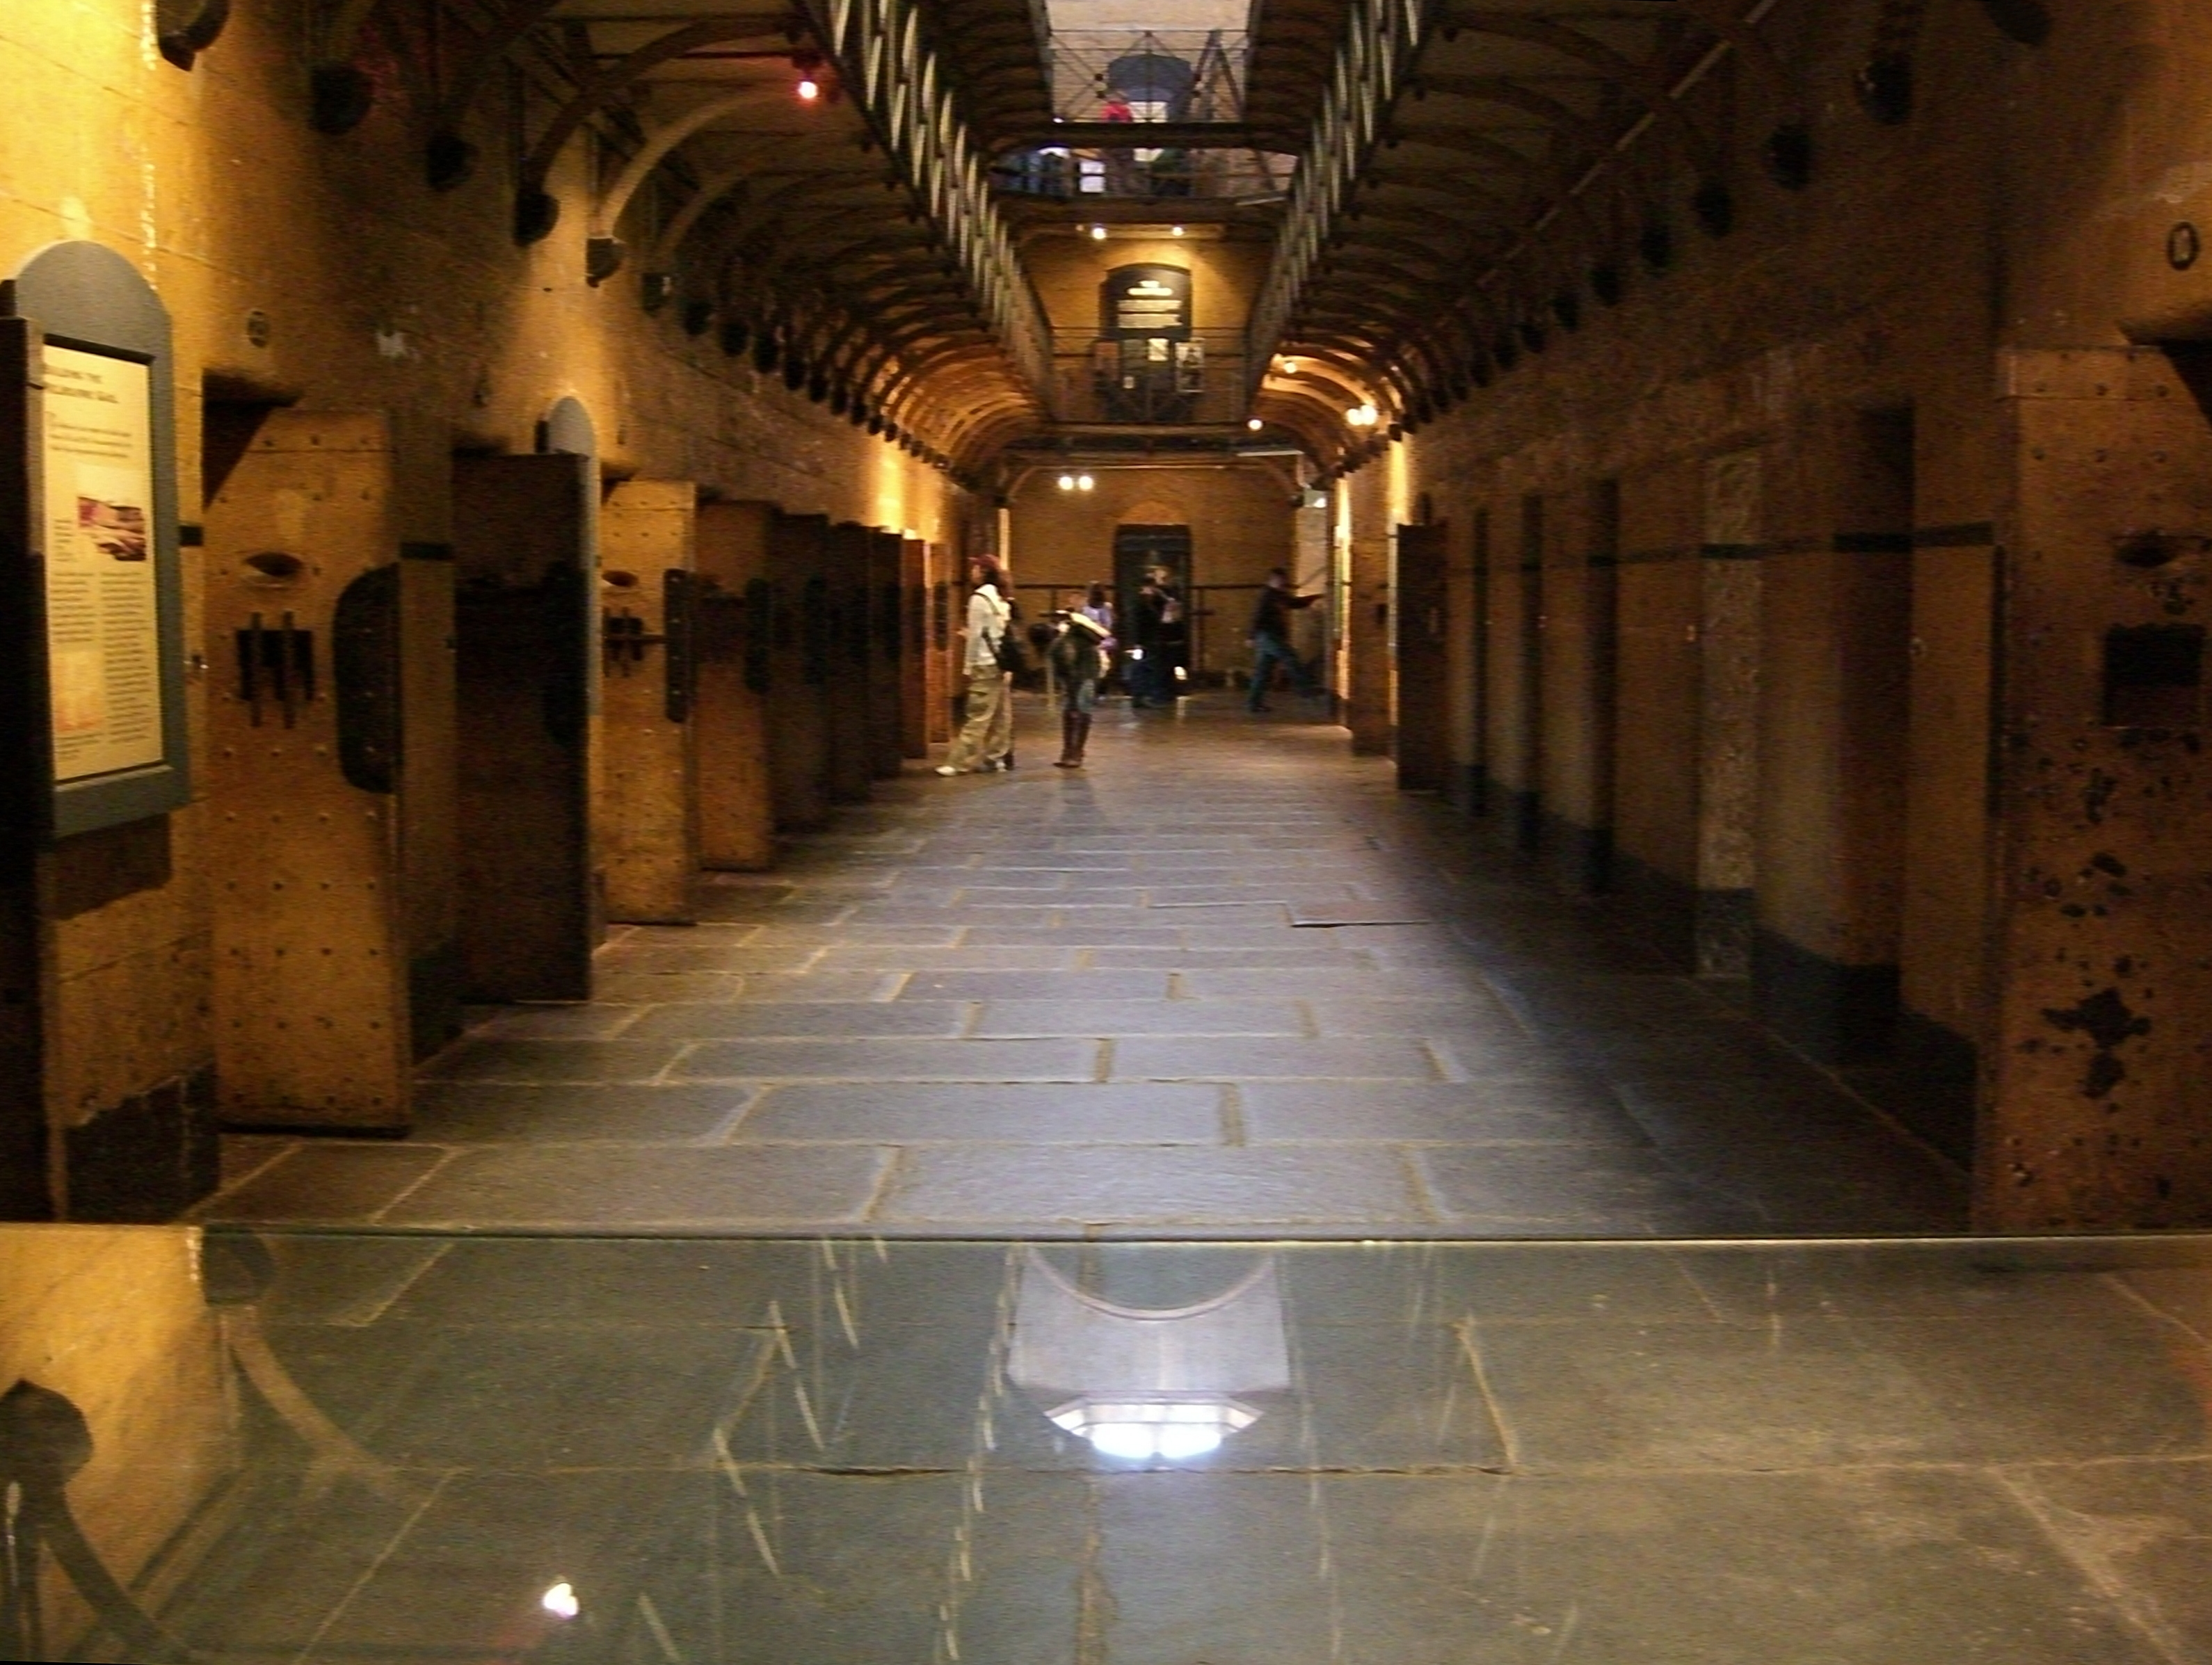 inside the old gaol jail in melbourne